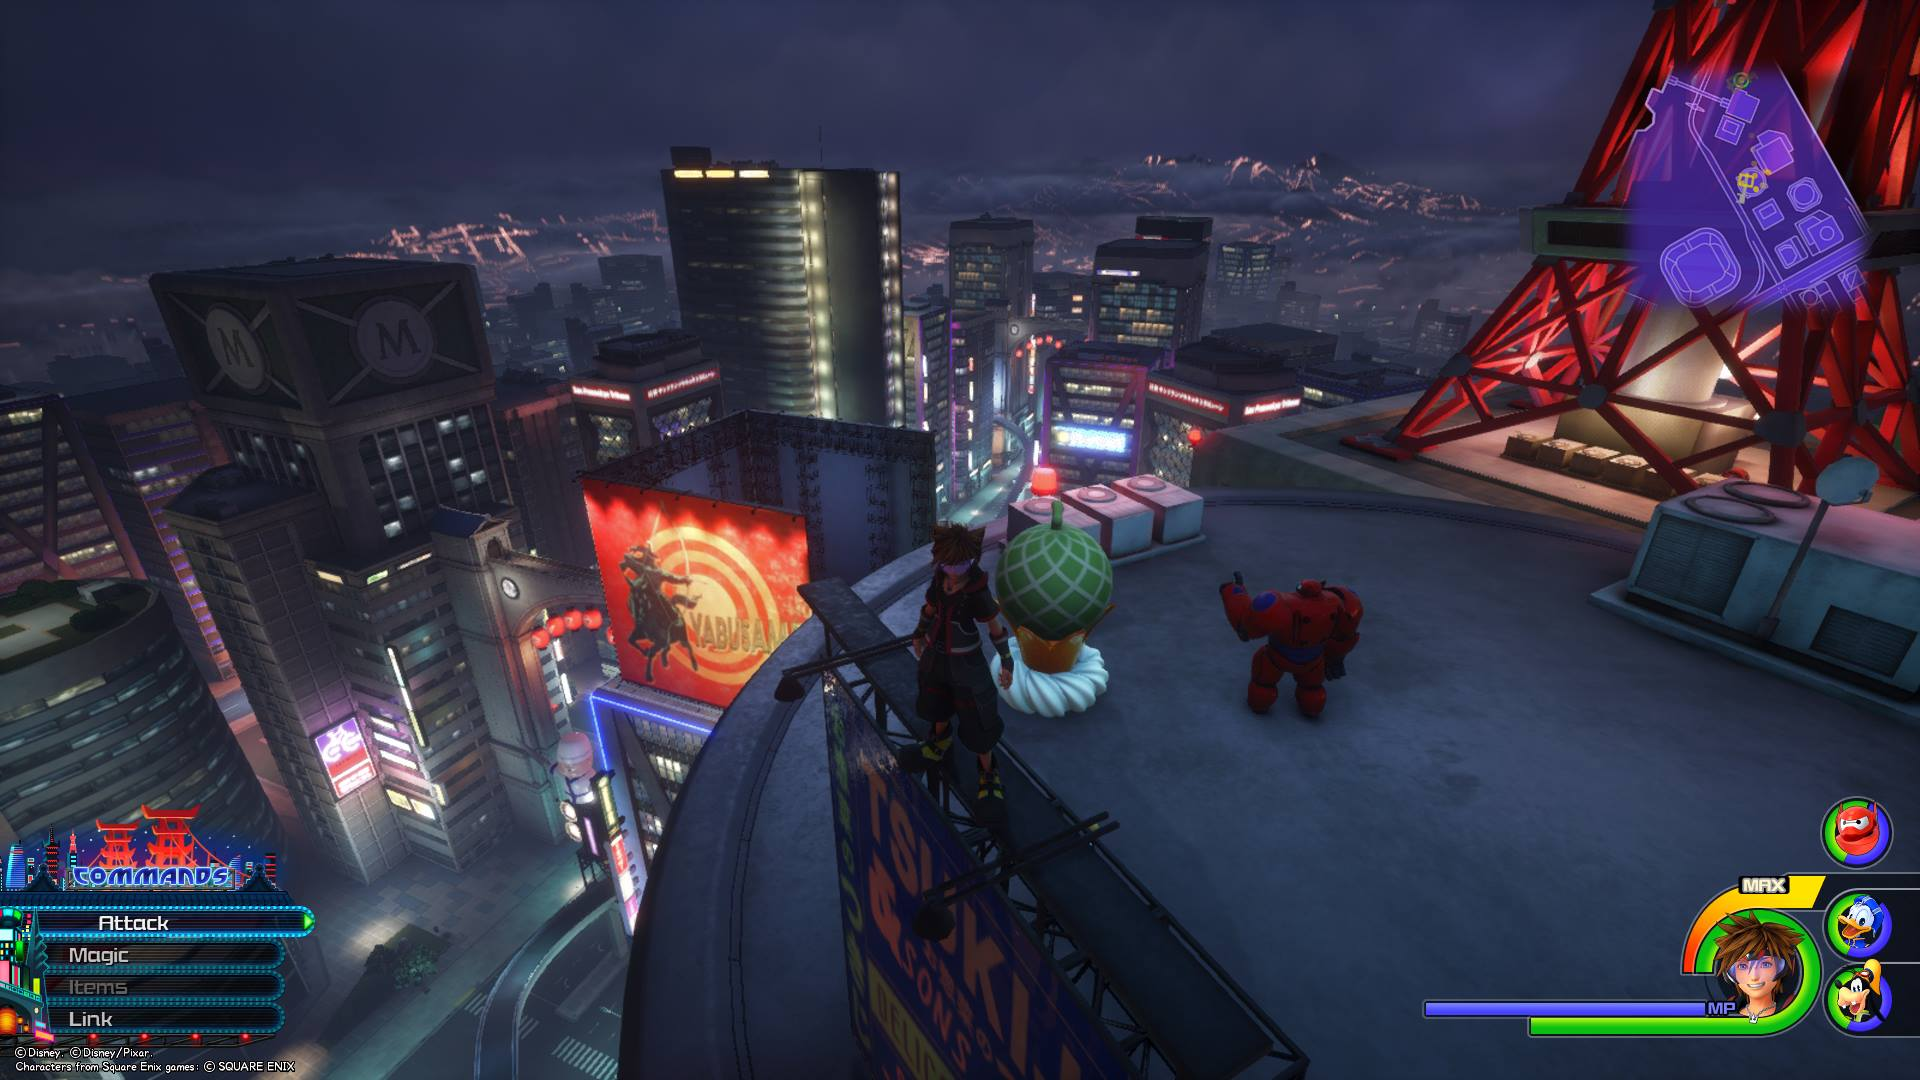 The seventh Flantastic Seven member can be found in the South District area of the City at night in the San Fransokyo world of Kingdom Hearts 3.